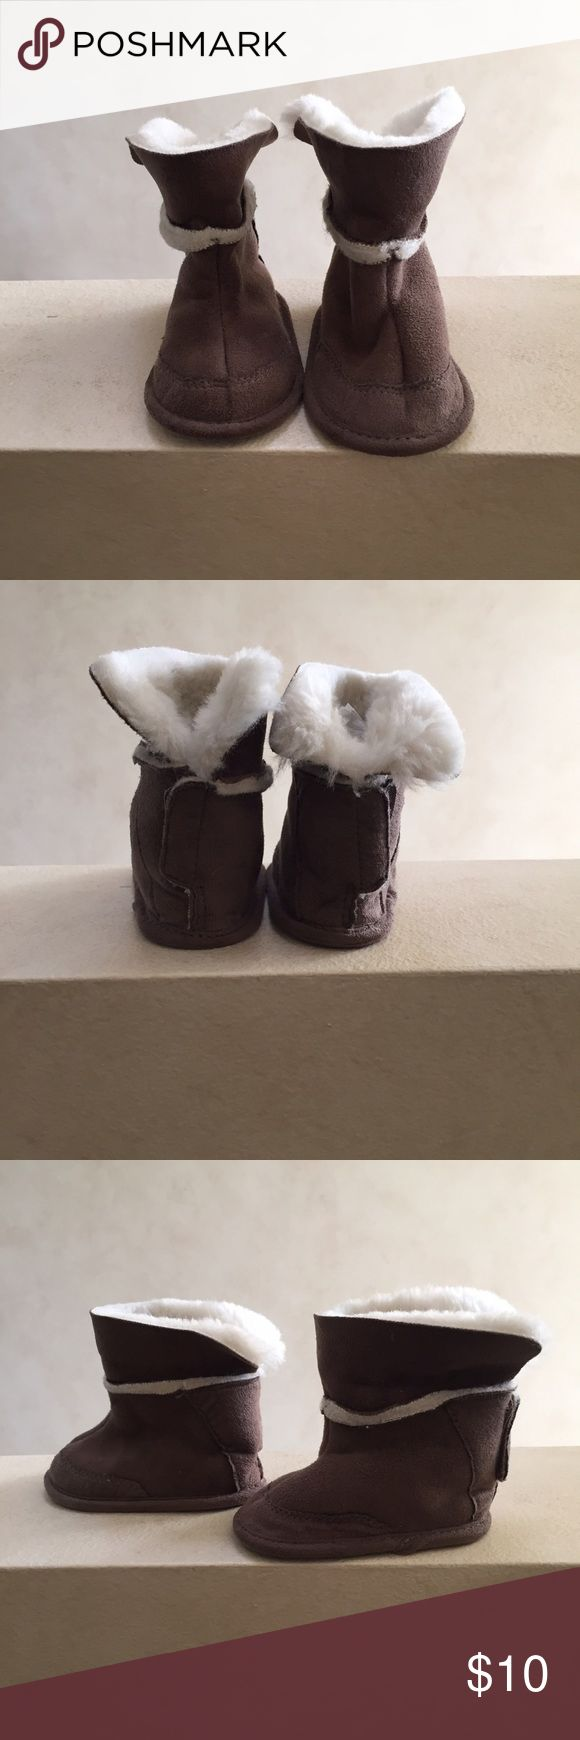 NWOT Baby Gap Boots New without tags. Fully lined furry faux suede booties with back Velcro closure - so cute! Bought these for a photo shoot but didn't end up using them. GAP Shoes Baby & Walker